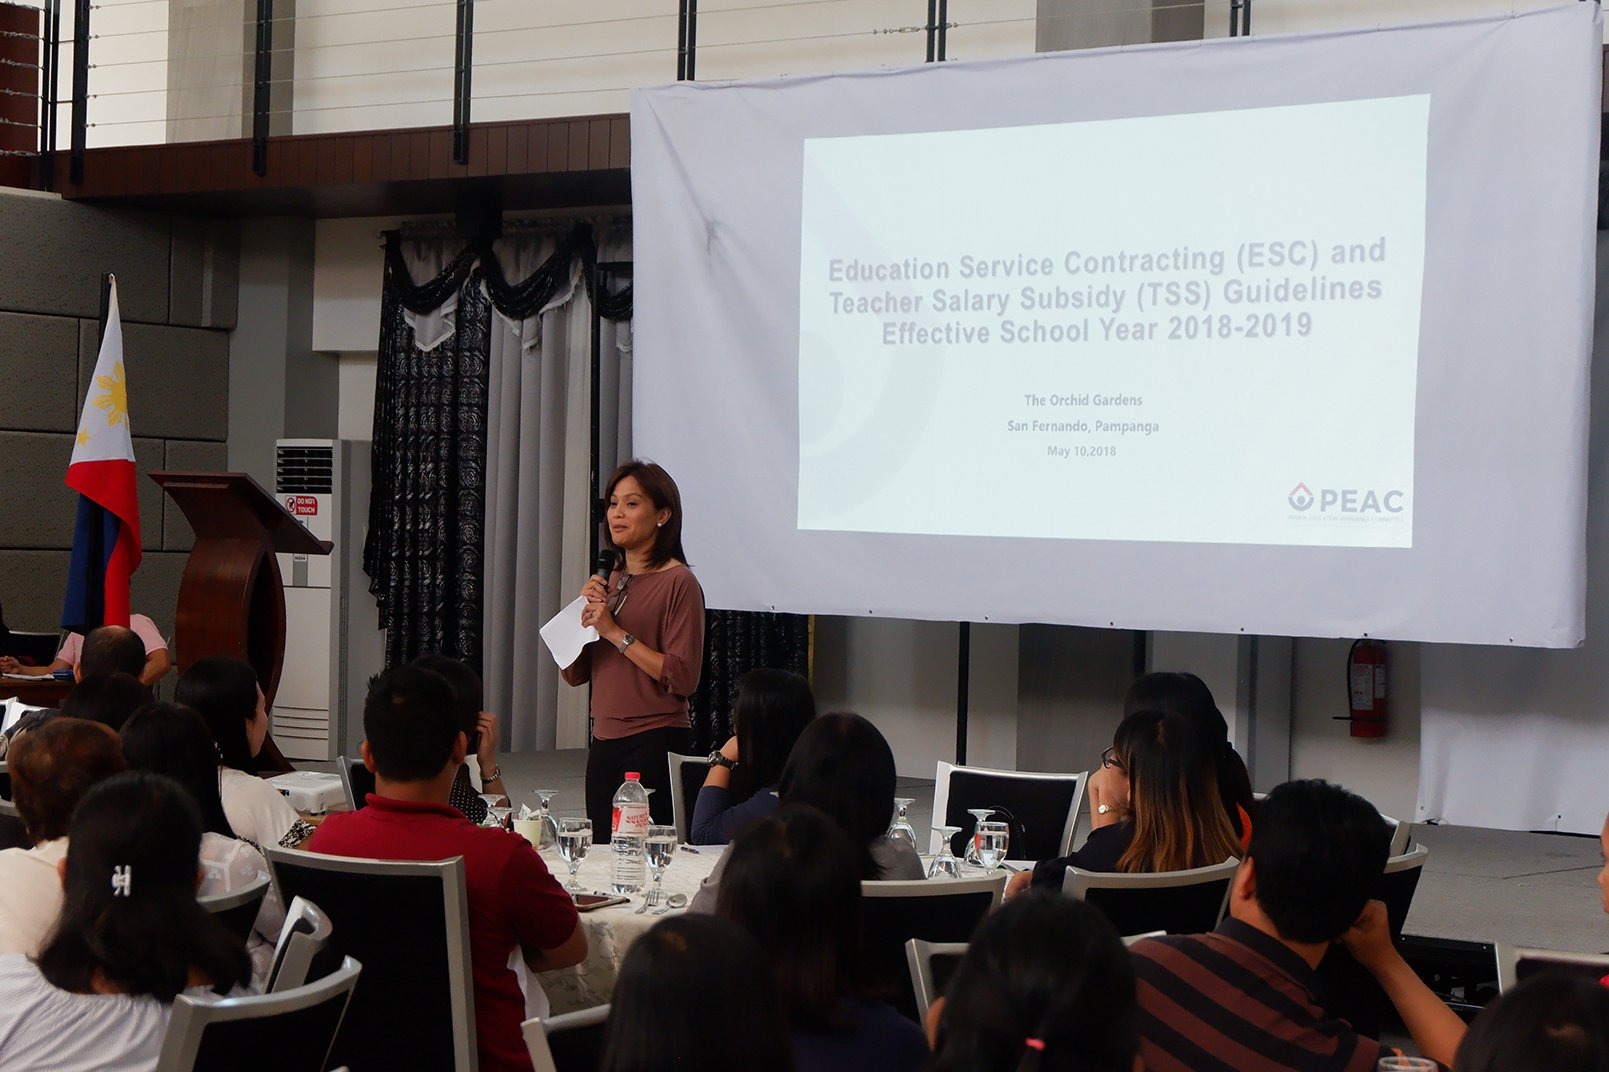 In Photos: Regional Orientation on the GASTPE Program for SY 2018-2019